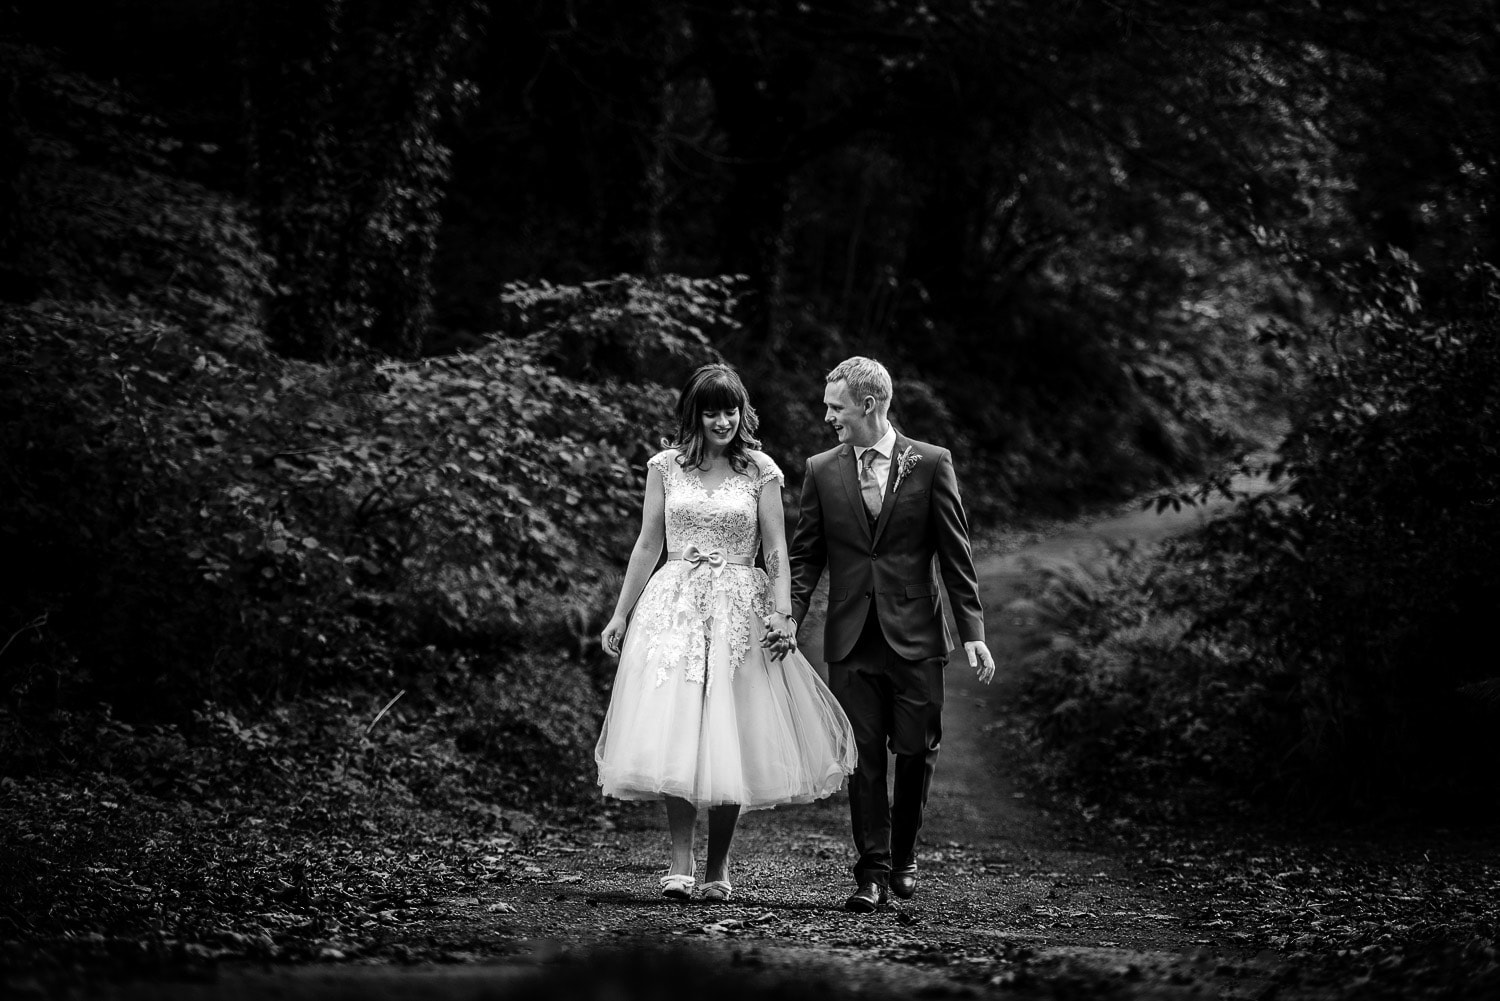 Pengenna Manor Wedding Photography